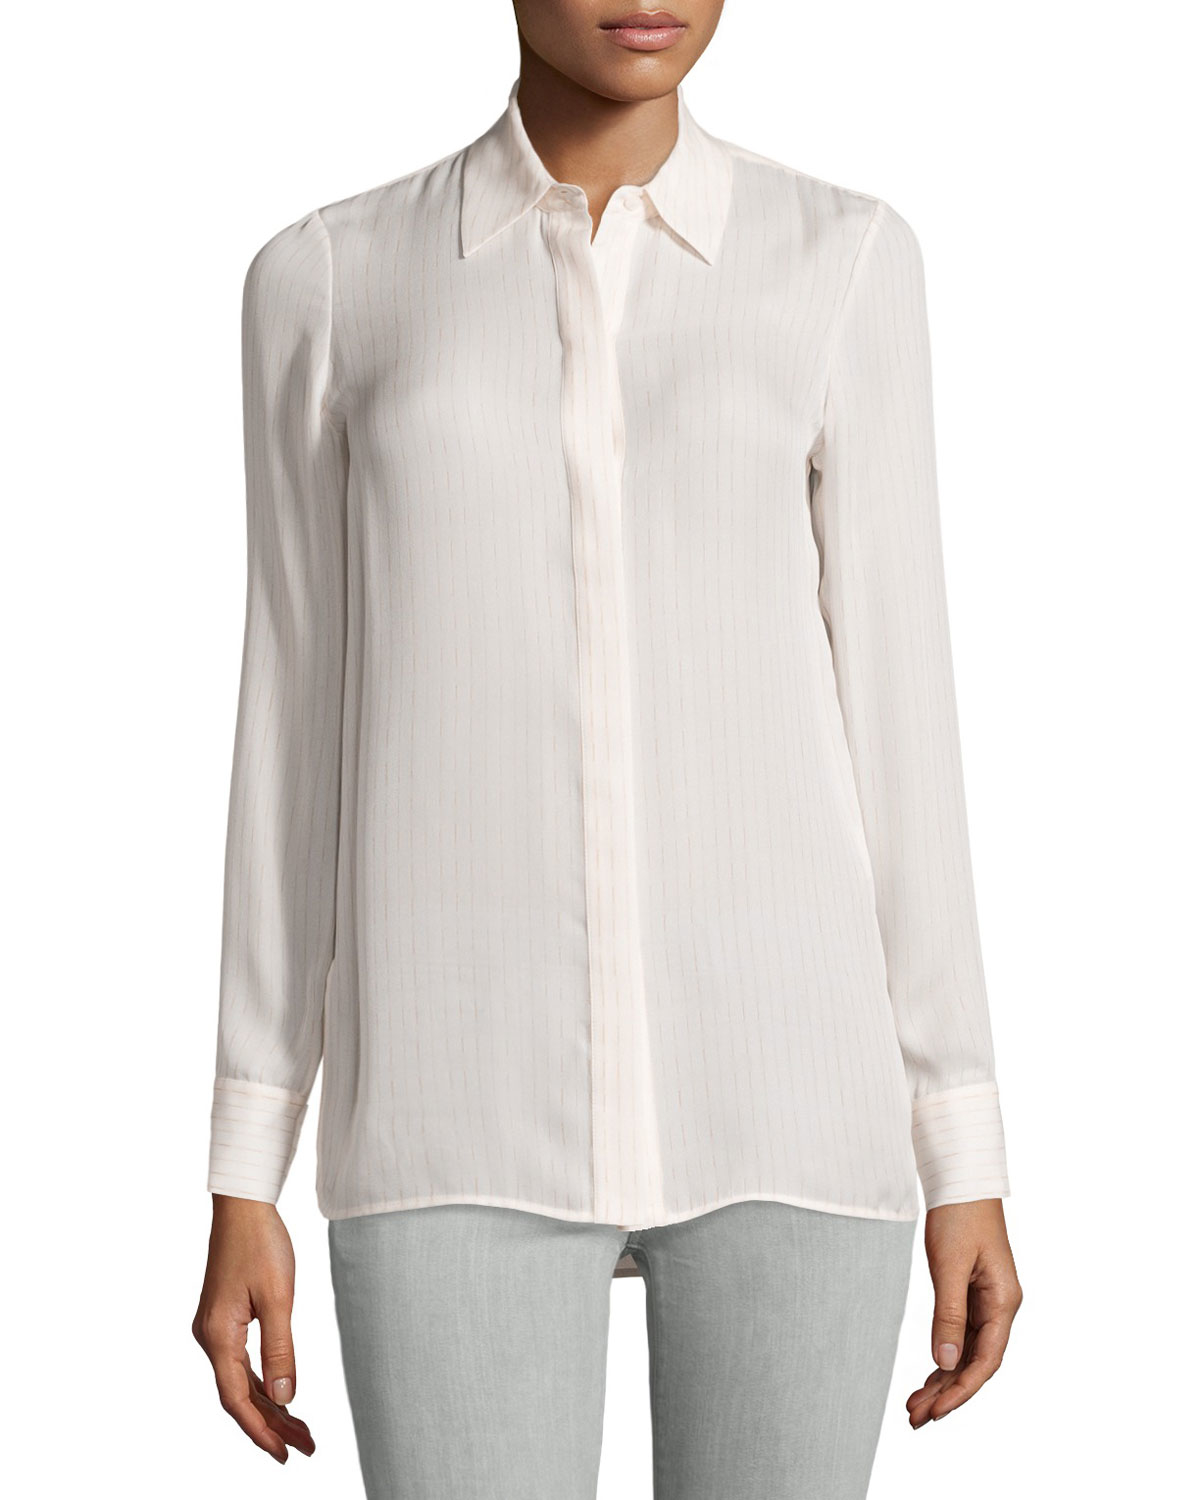 White Blouses. Showing 40 of 45 results that match your query. Search Product Result. Women Lace Decorated Long Sleeves Shirt and Blouse White. Product - Women Lace Designed Upper Wearing Shirt and Blouse White. Product Image. Price $ Product Title.